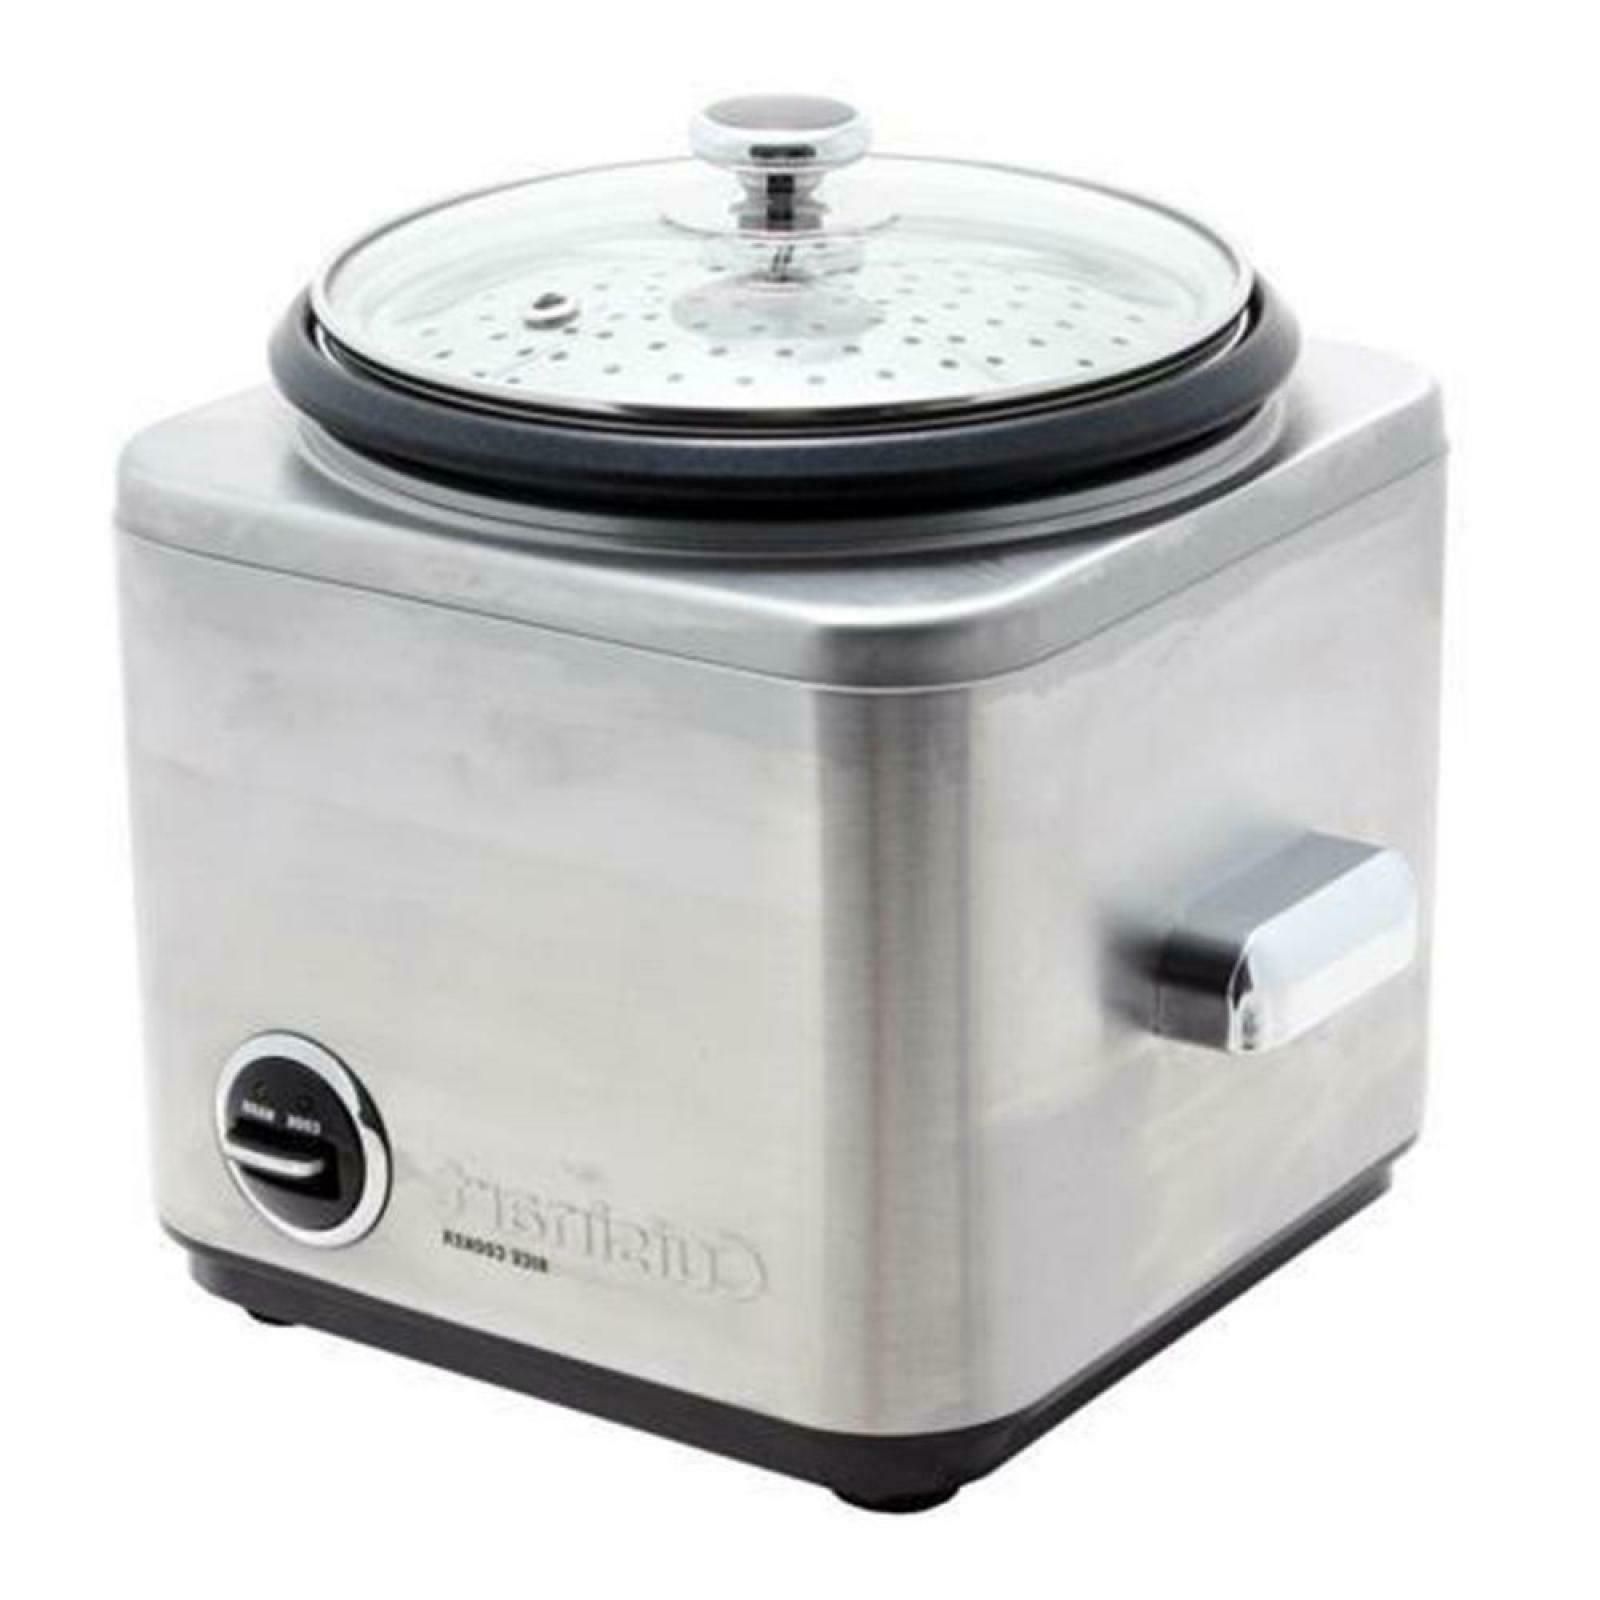 8-Cup Stainless Cooker With Cord And